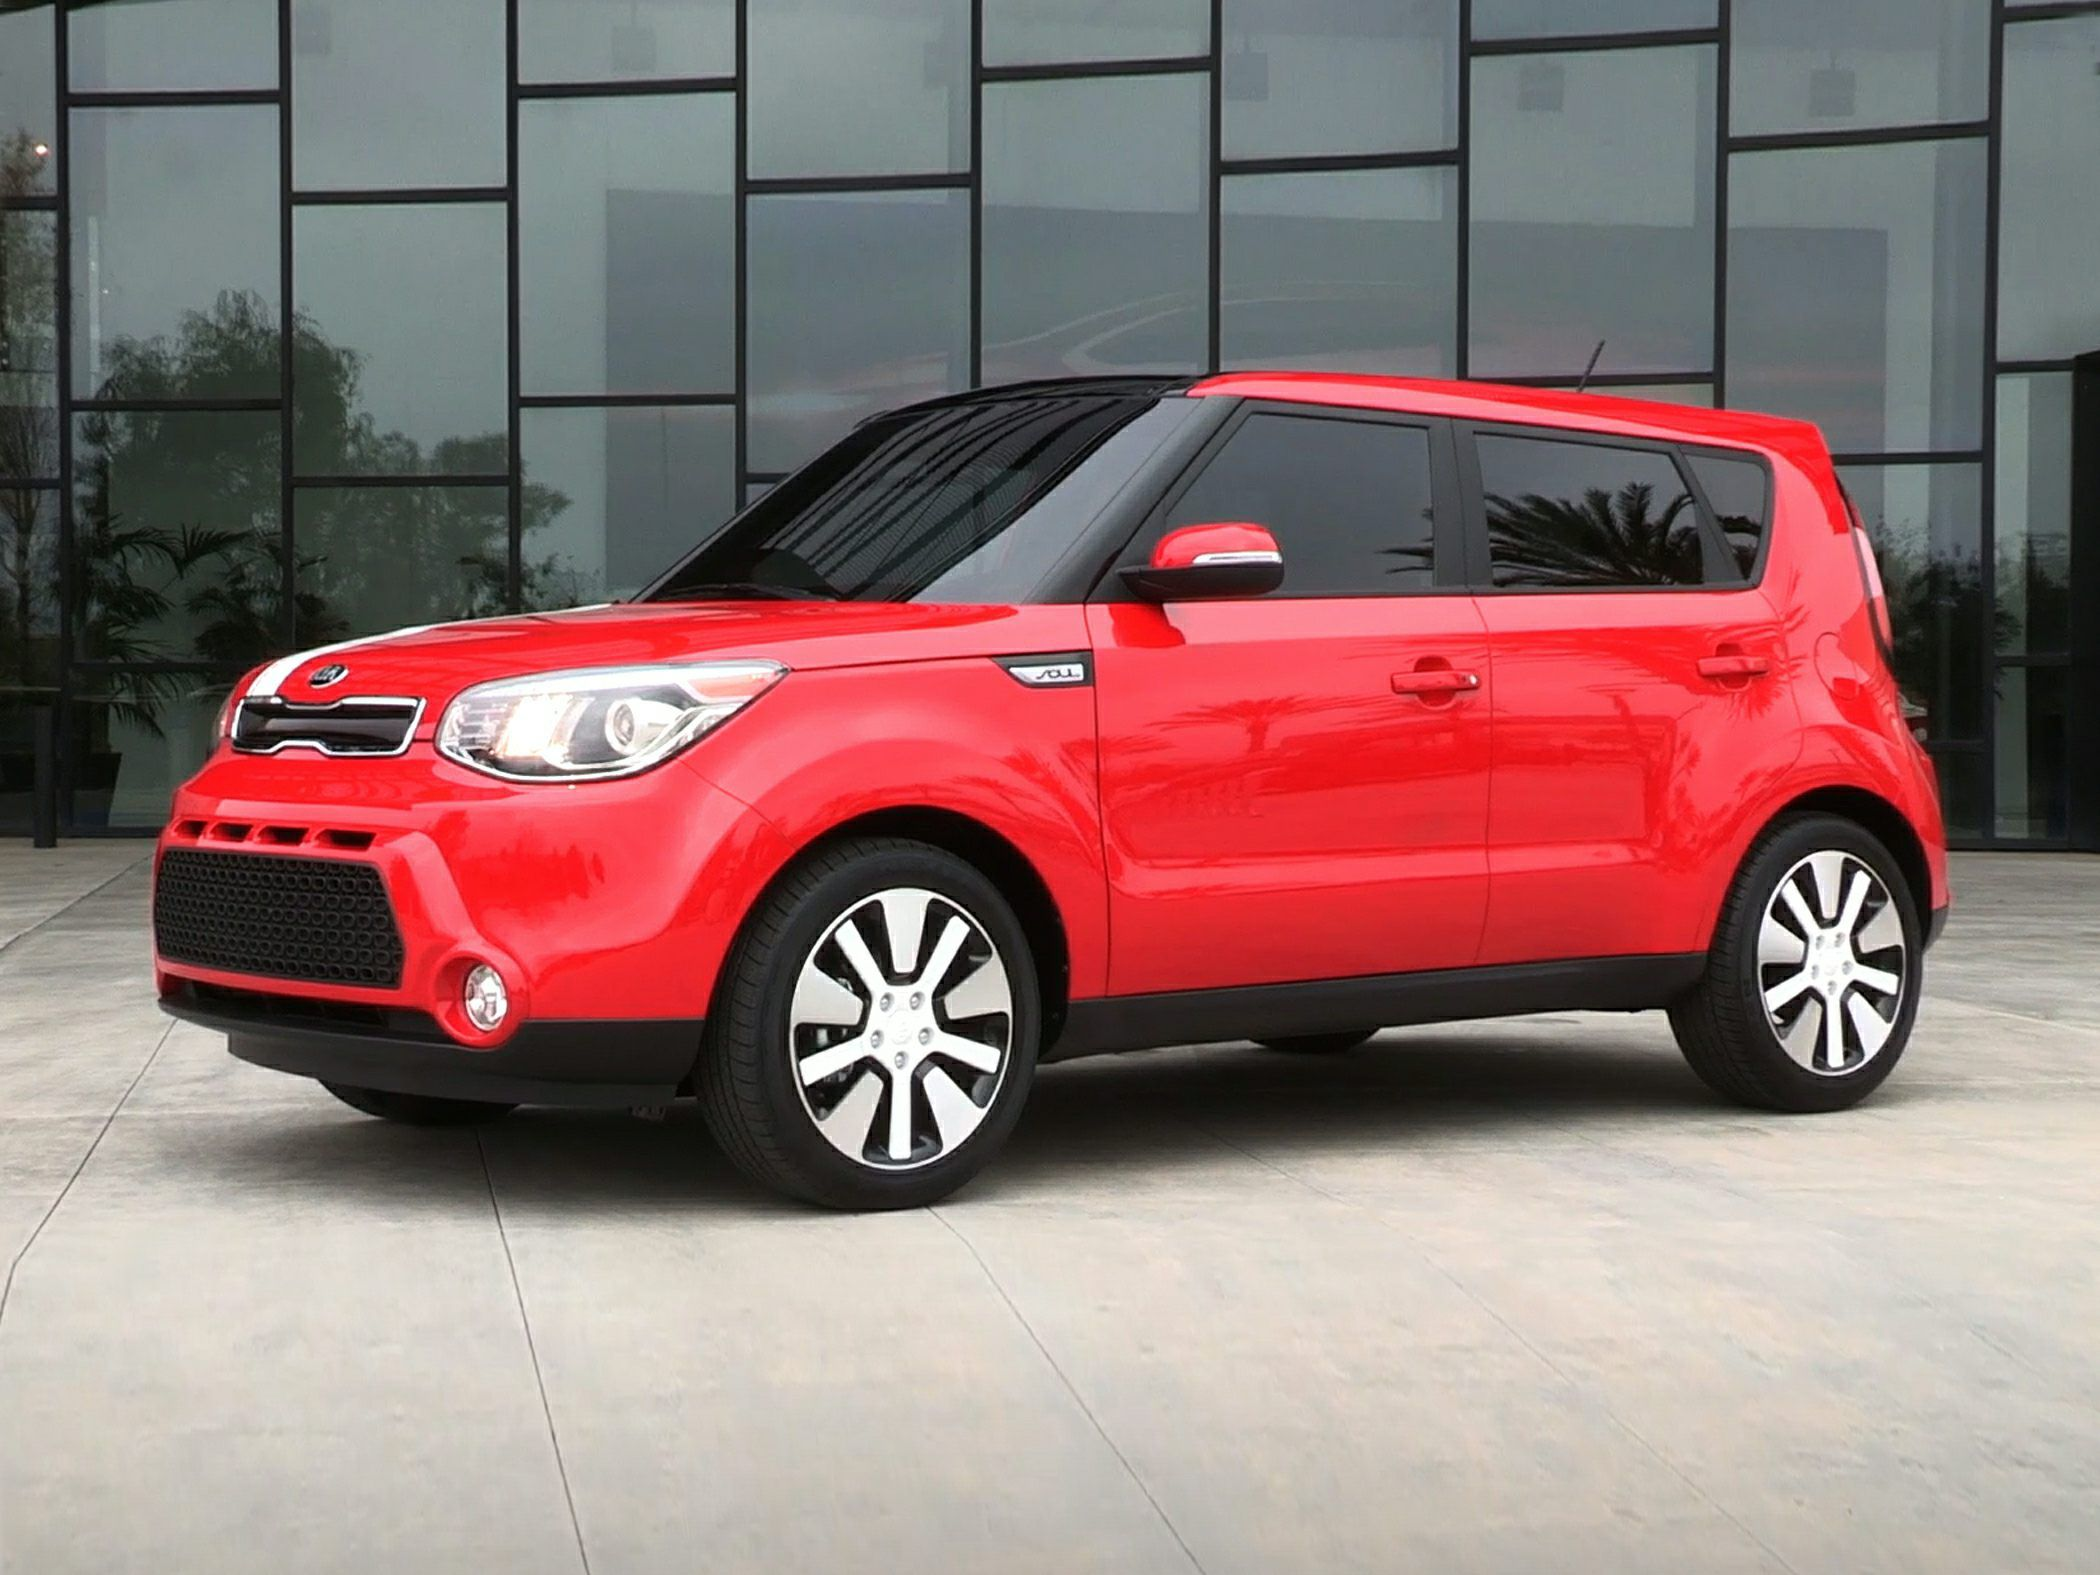 kia pin px chapman cars pinterest for cool red front wallpaper computer mason side soul price